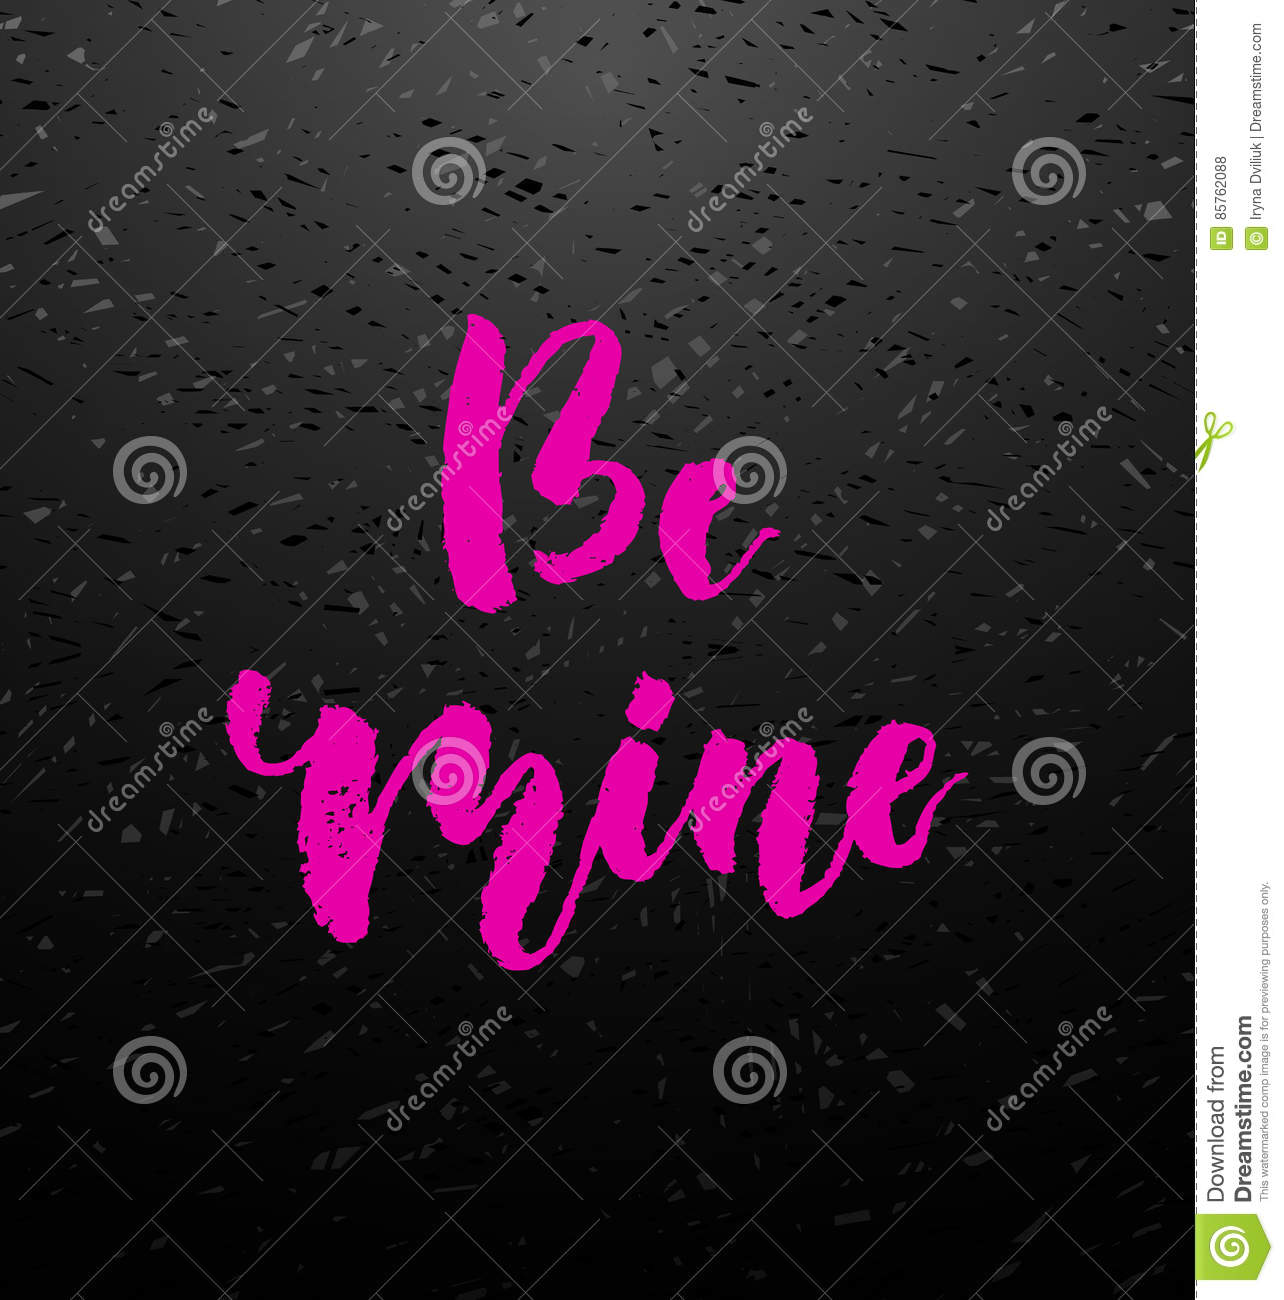 Be mine greeting card with calligraphy stock vector illustration be mine love calligraphy valentines day romantic quote greeting card handwritten modern brush lover lettering for love cards banners posters m4hsunfo